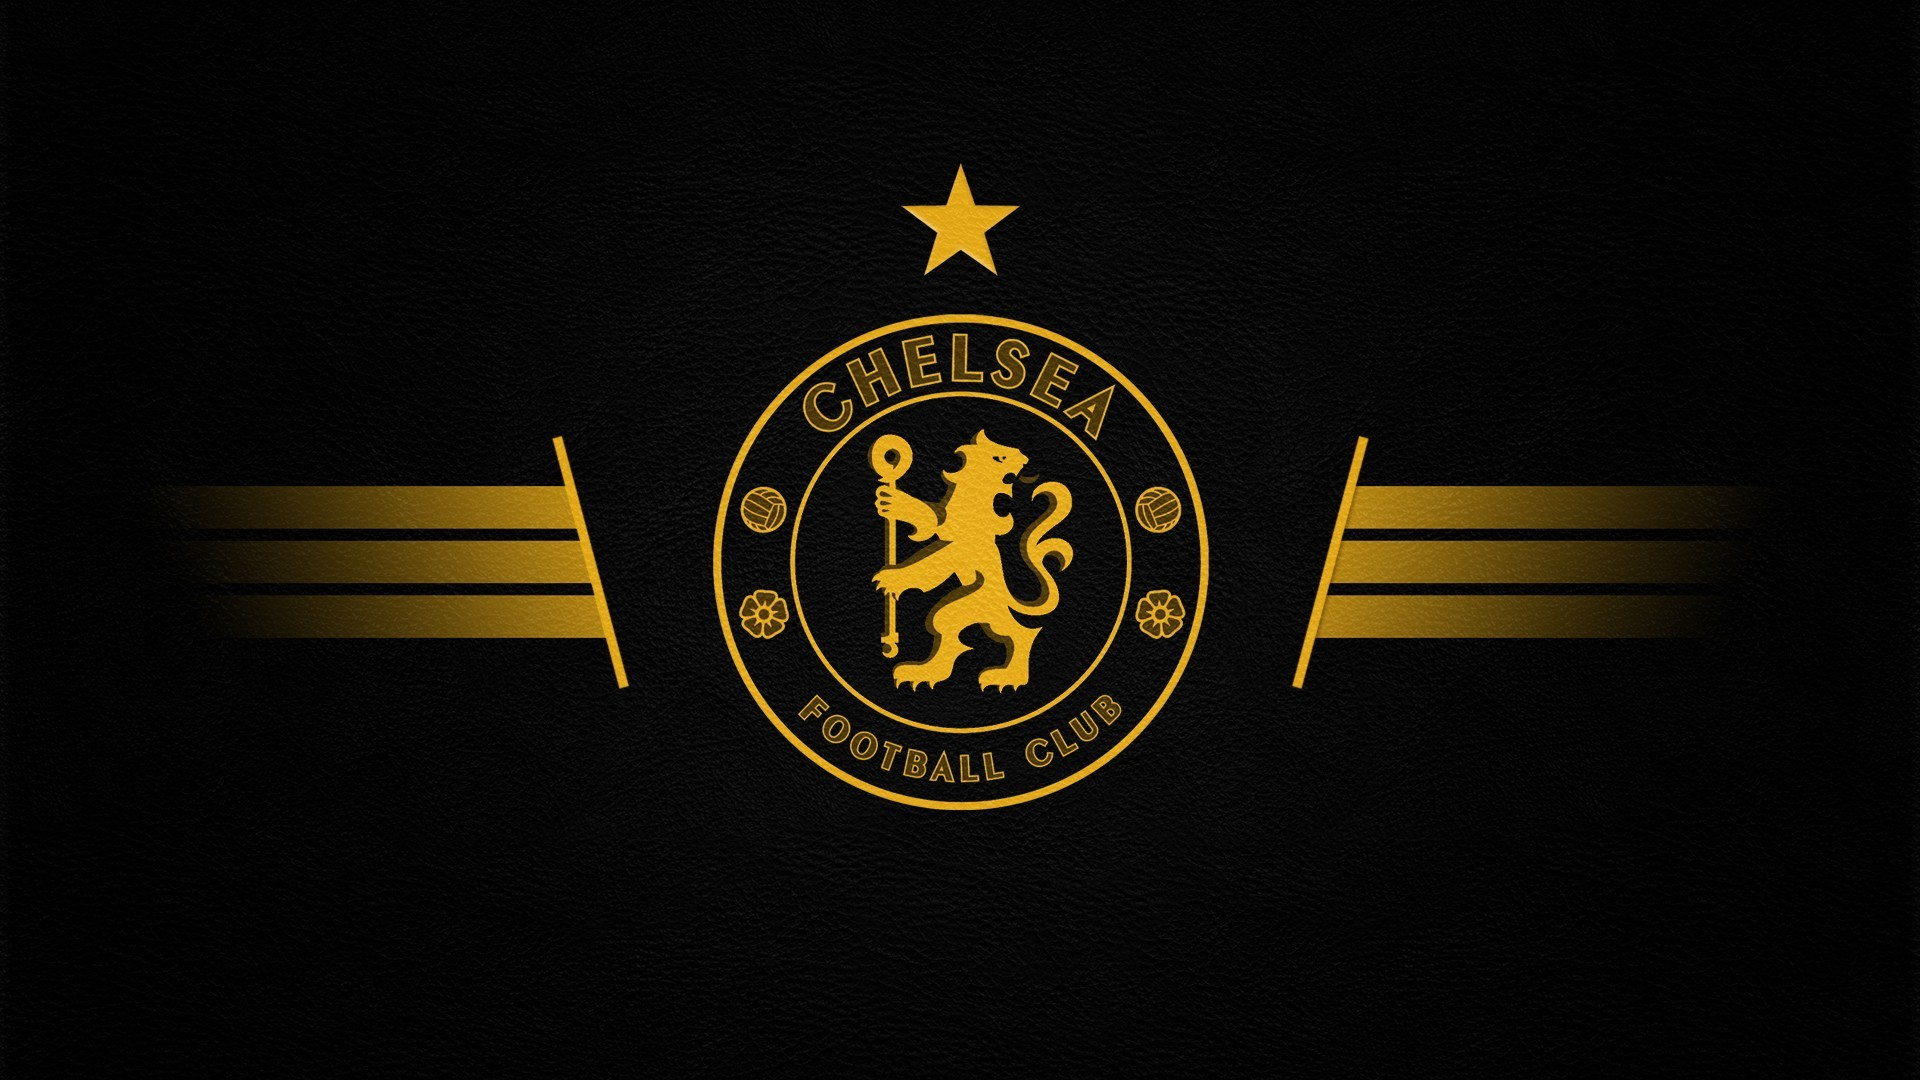 Collection of Chelsea Fc Hd Wallpapers on HDWallpapers 1920x1080